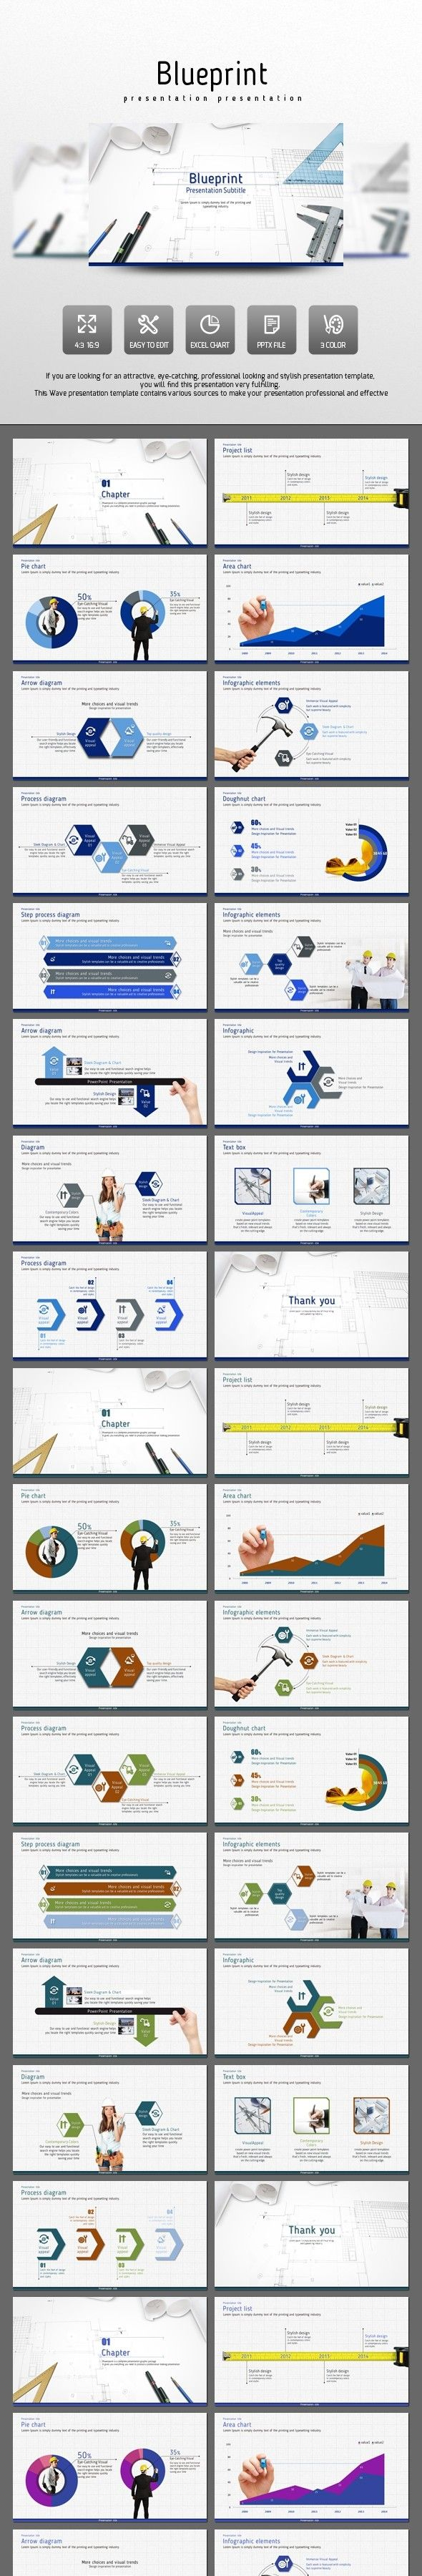 Blueprint presentation templates creative powerpoint and images blueprint presentation templates creative powerpoint and images photos malvernweather Images